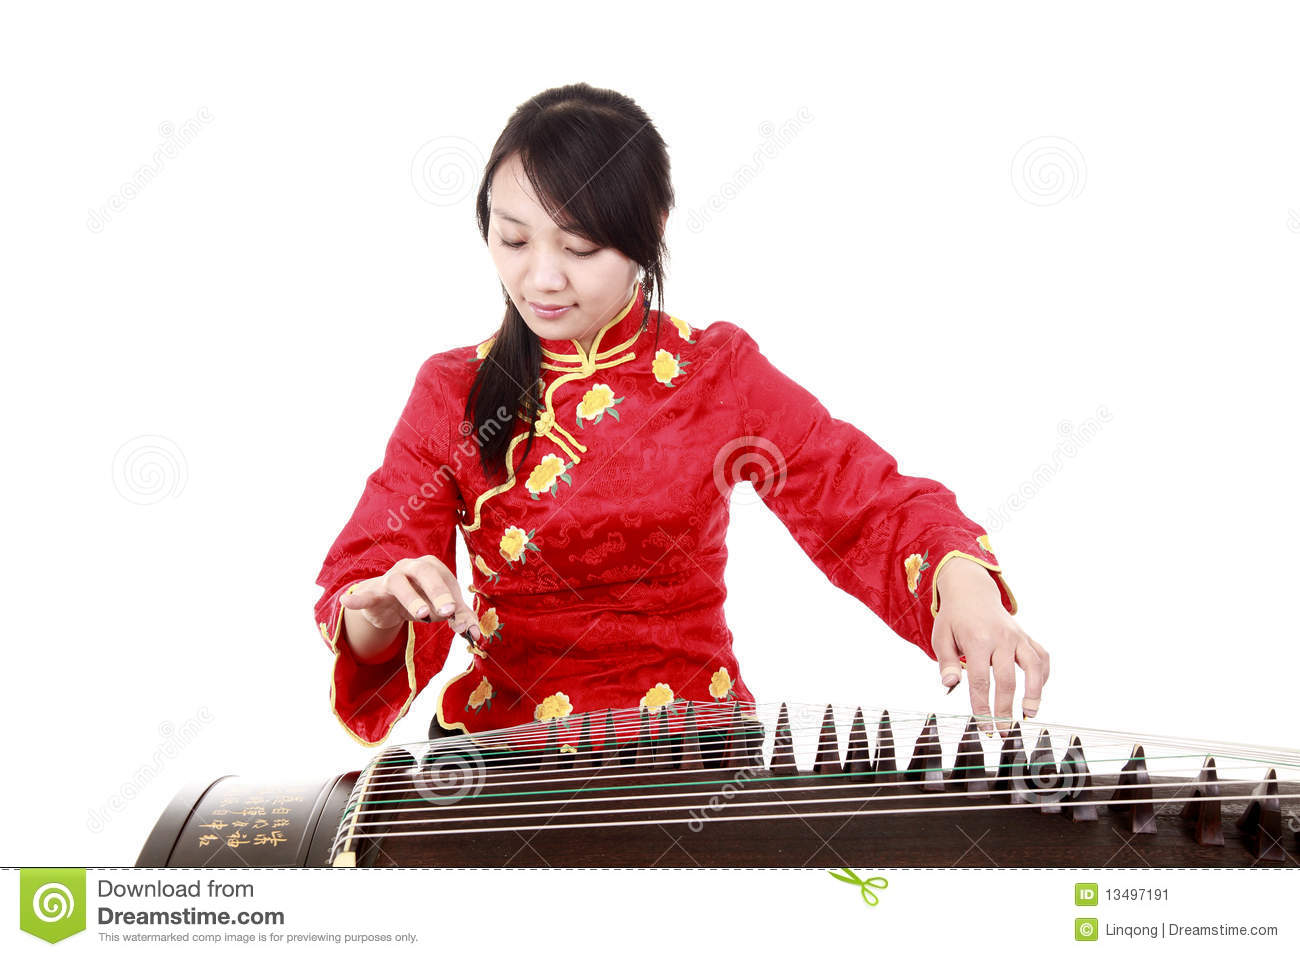 Chinese Zither Images Stock Photos amp Vectors  Shutterstock